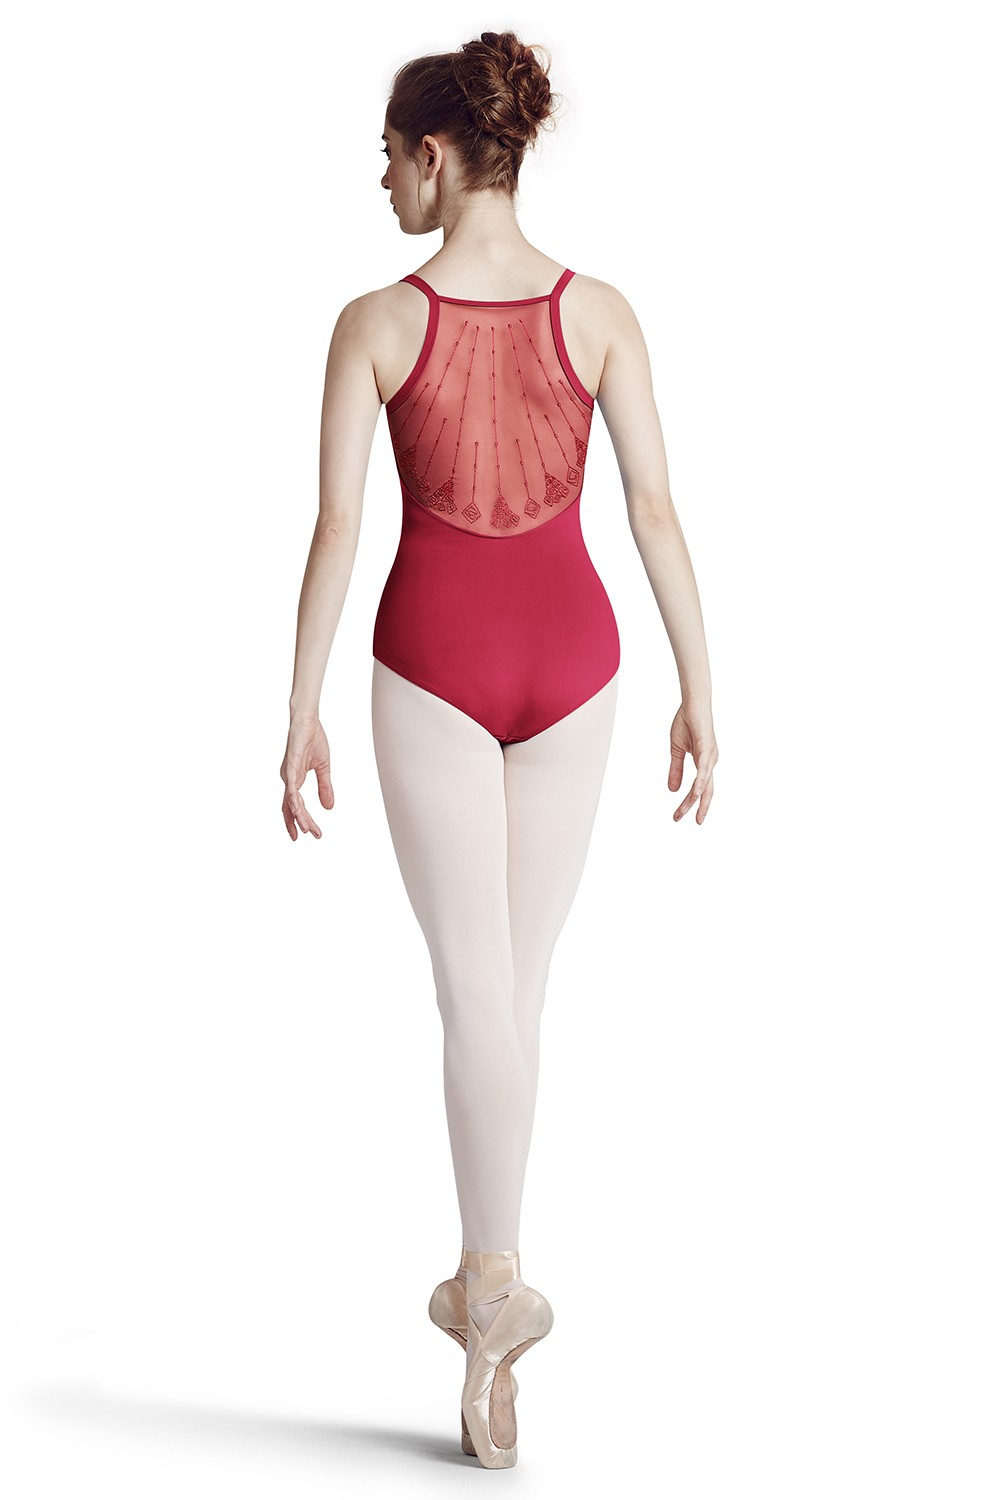 Alinea Women's Dance Leotards